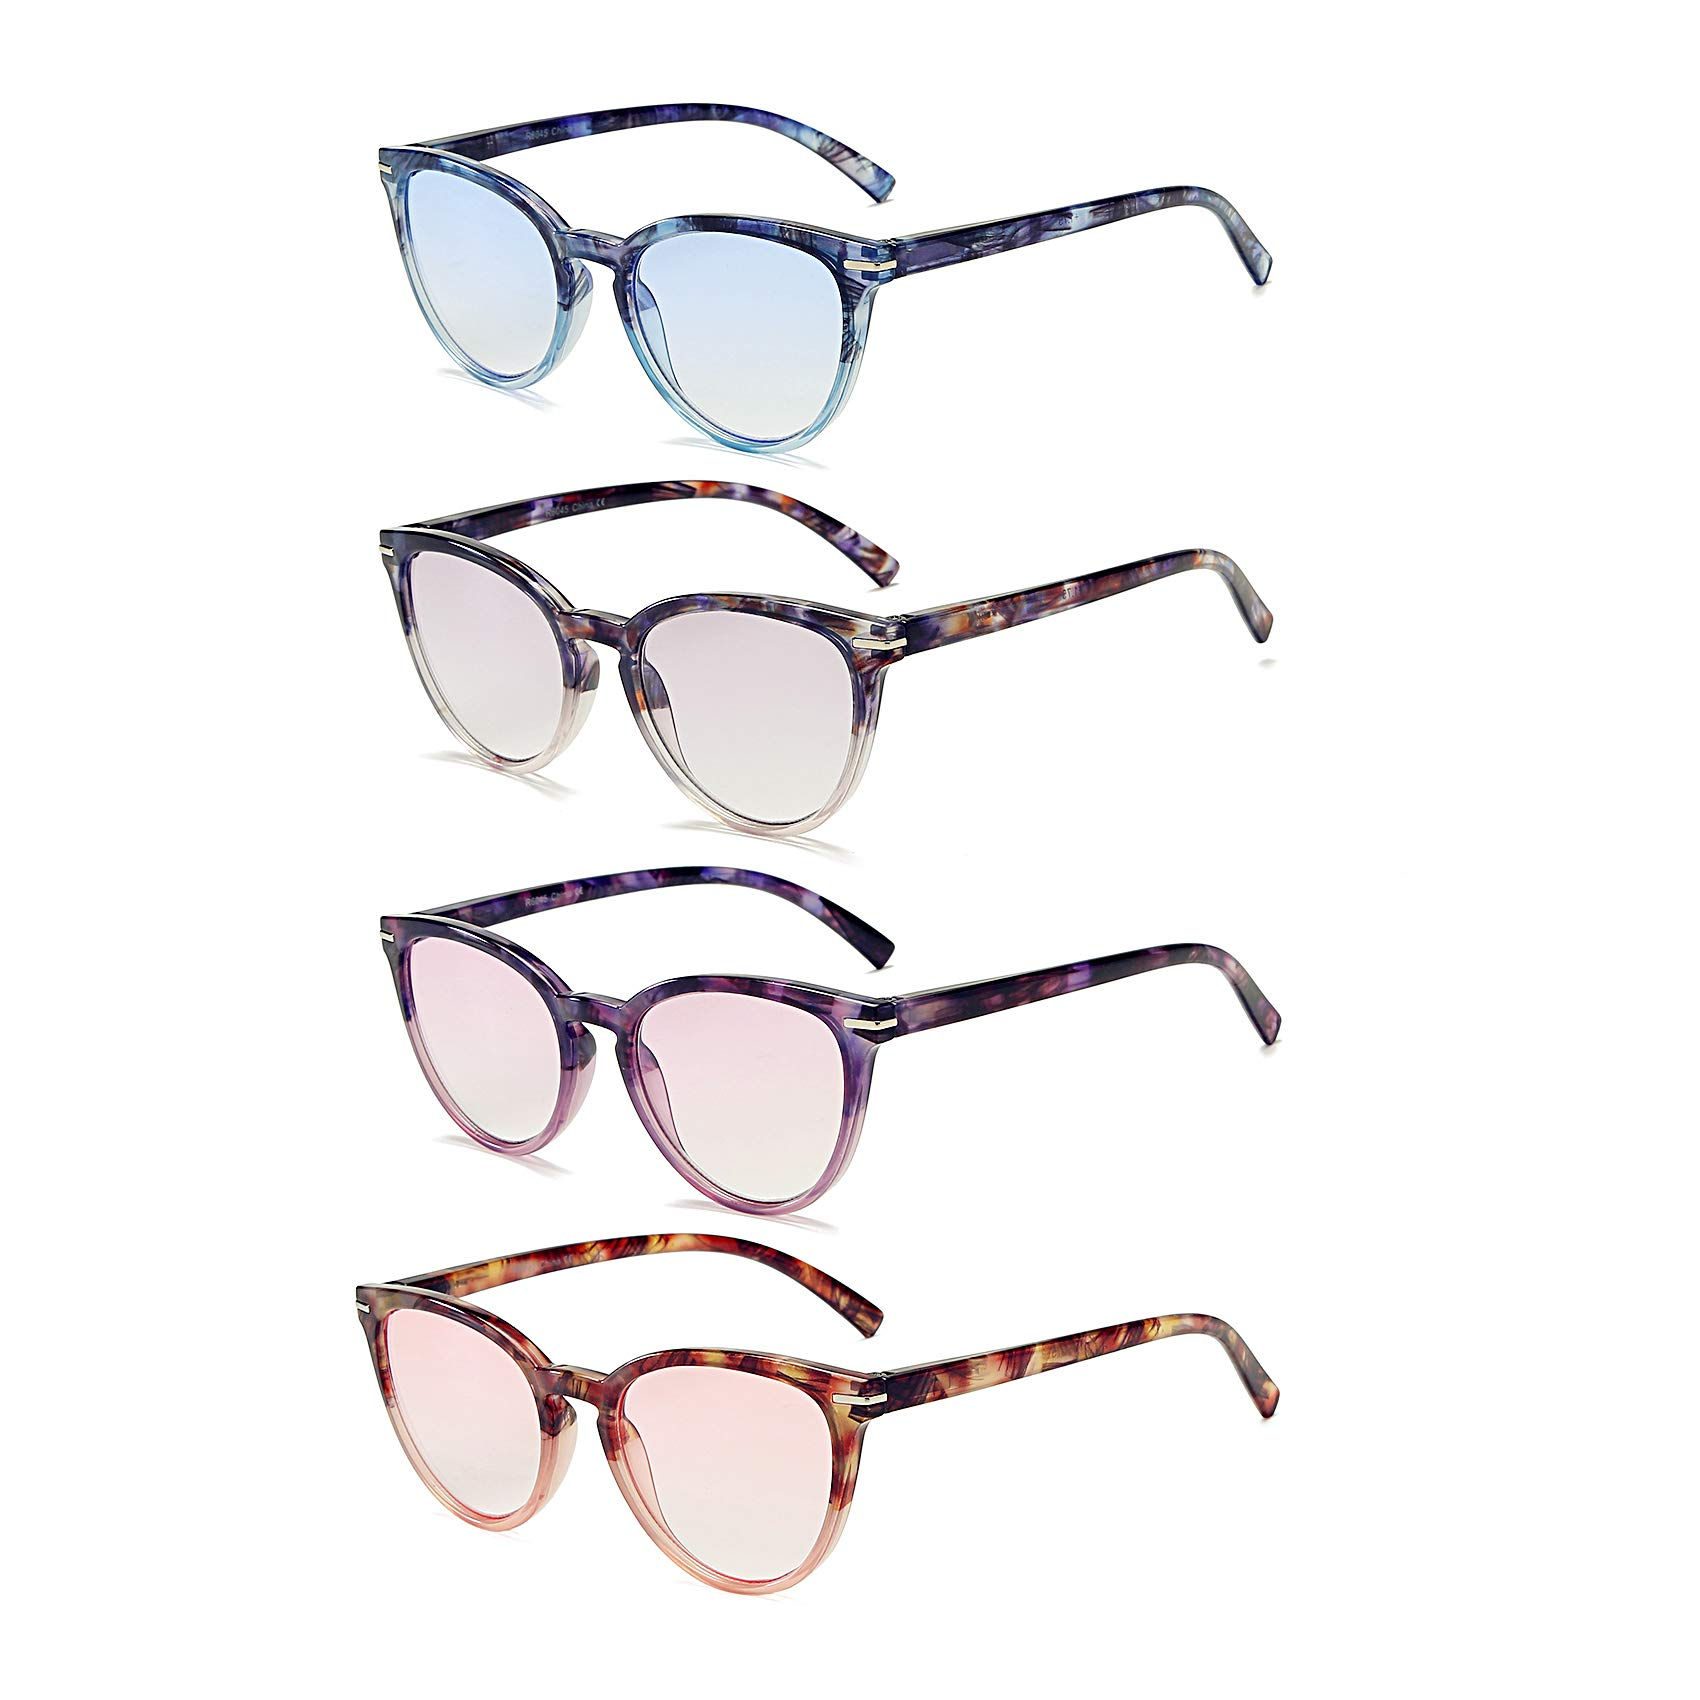 100 CLASSIC Reading Glasses 4 Pack Quality Fashion Colorful Readers for Women R6045 (2.50) by 100 CLASSIC